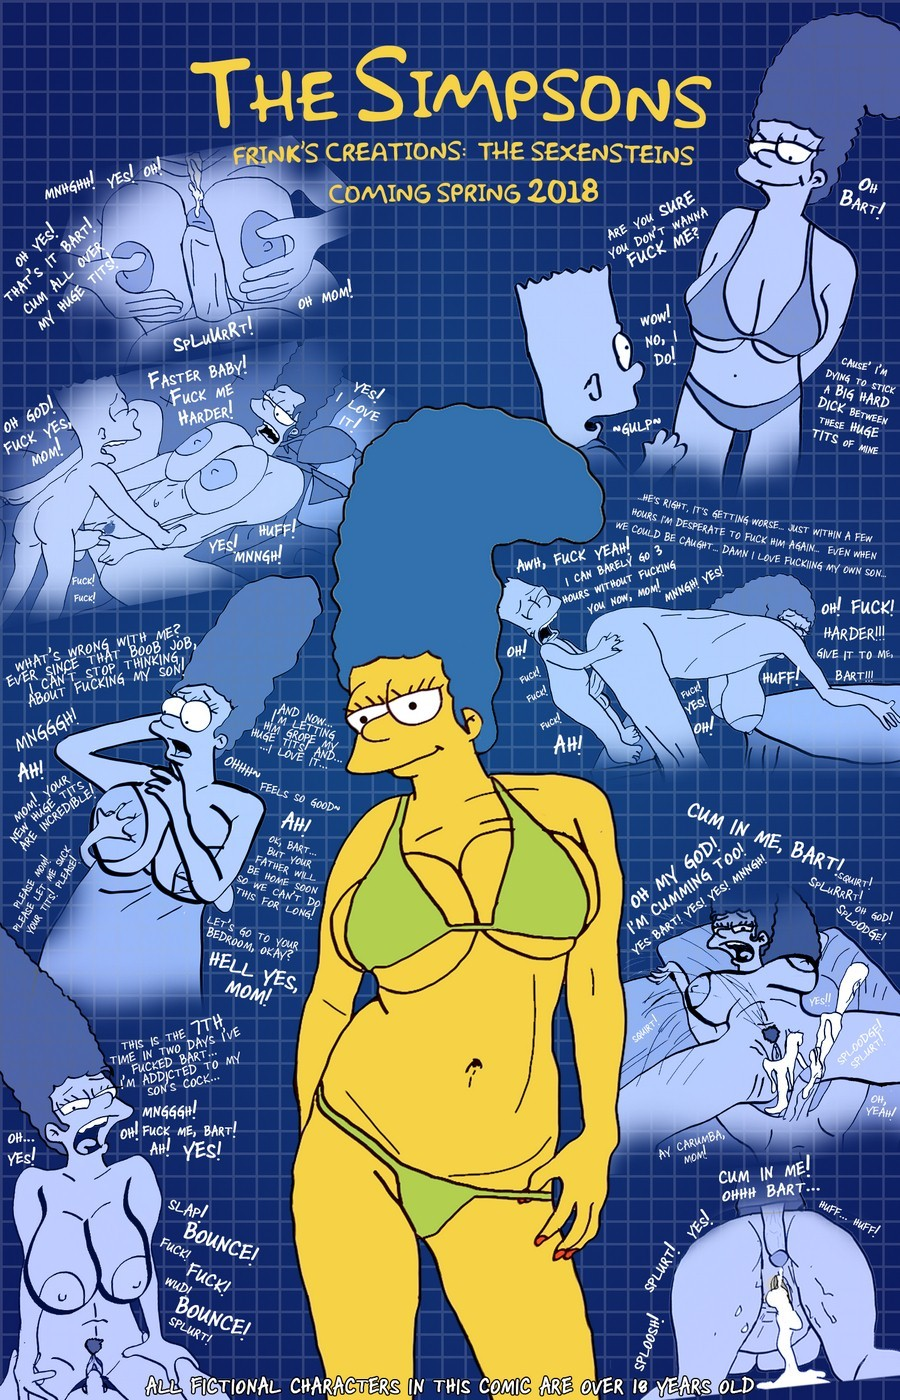 The-Simpsons-are-The-Sexenteins-1.jpg